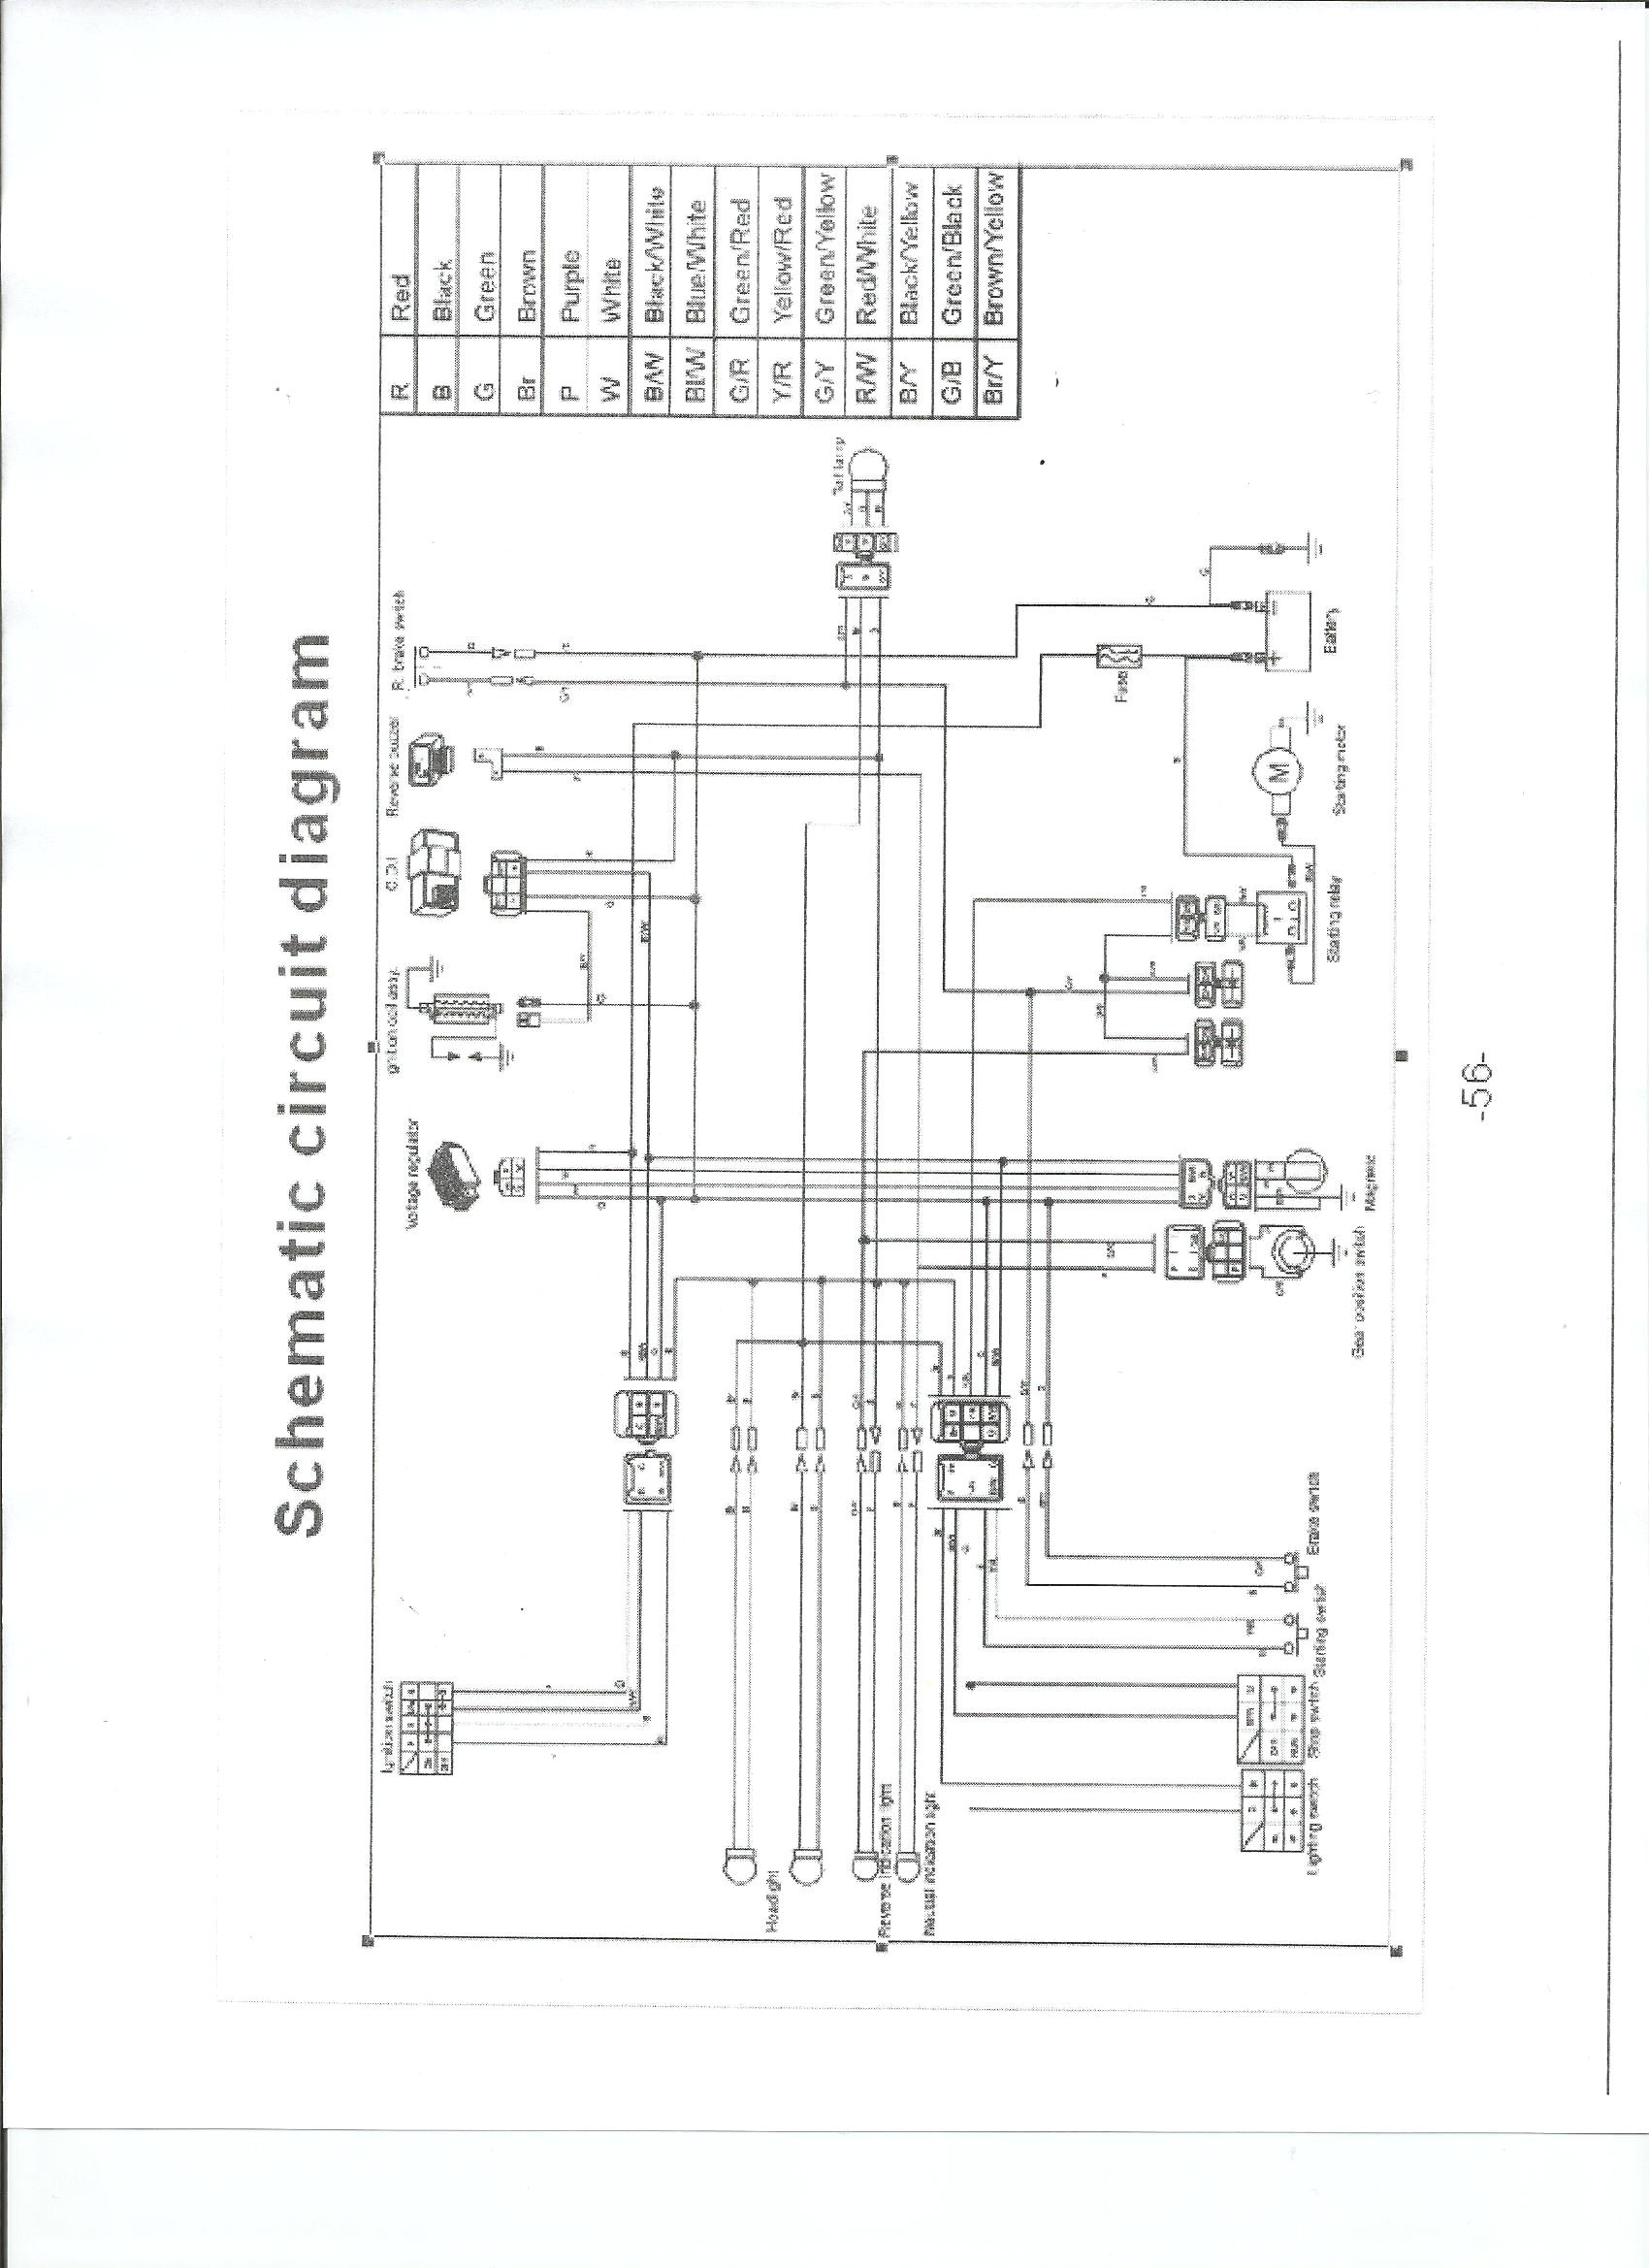 Chinese atv Wiring Diagram 110 Fresh Taotao 110 atv Wiring Diagram